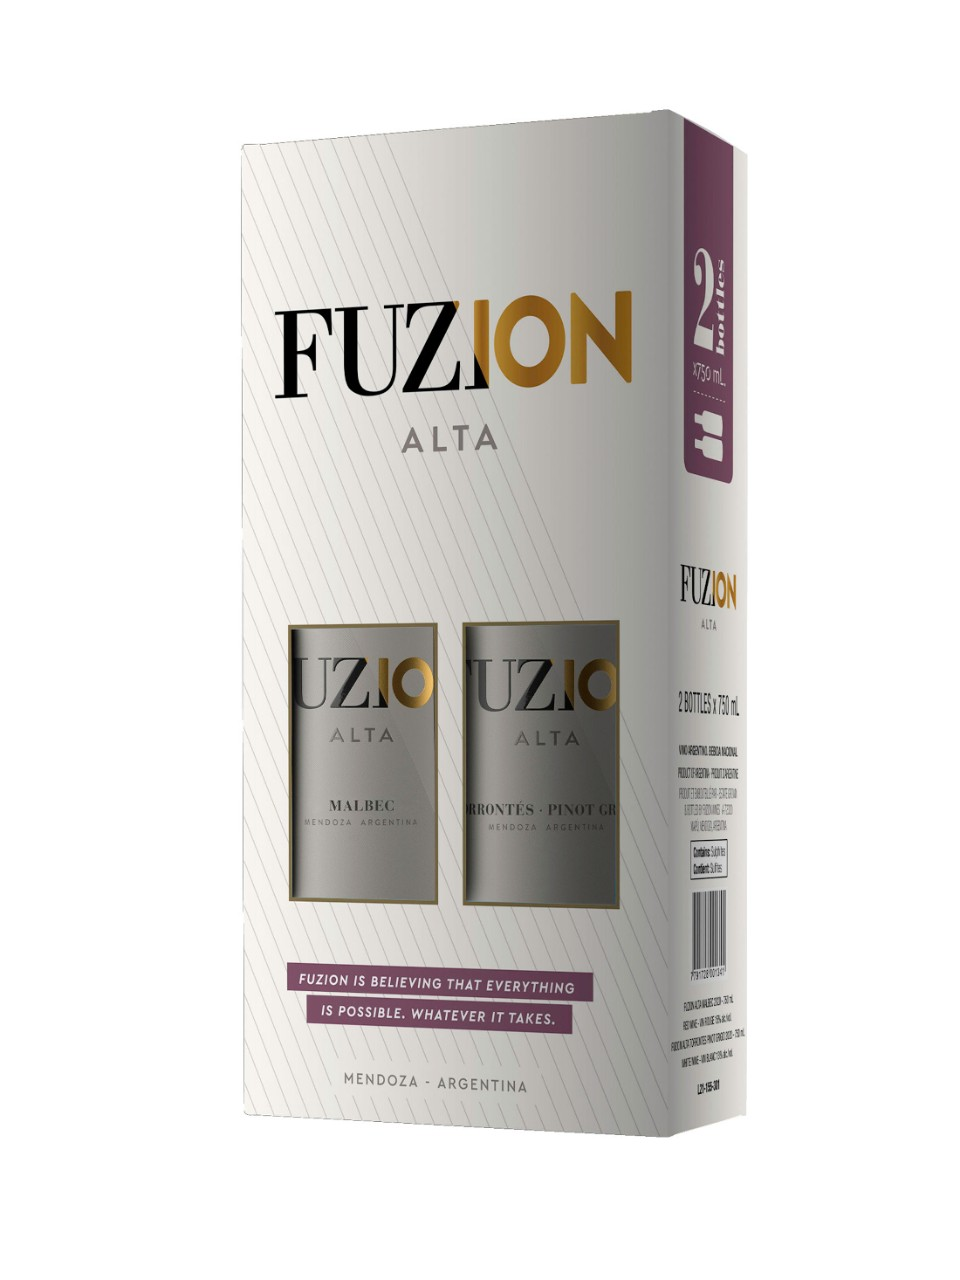 Image for Fuzion Alta Duo Gift Pack 2 x 750mL from LCBO